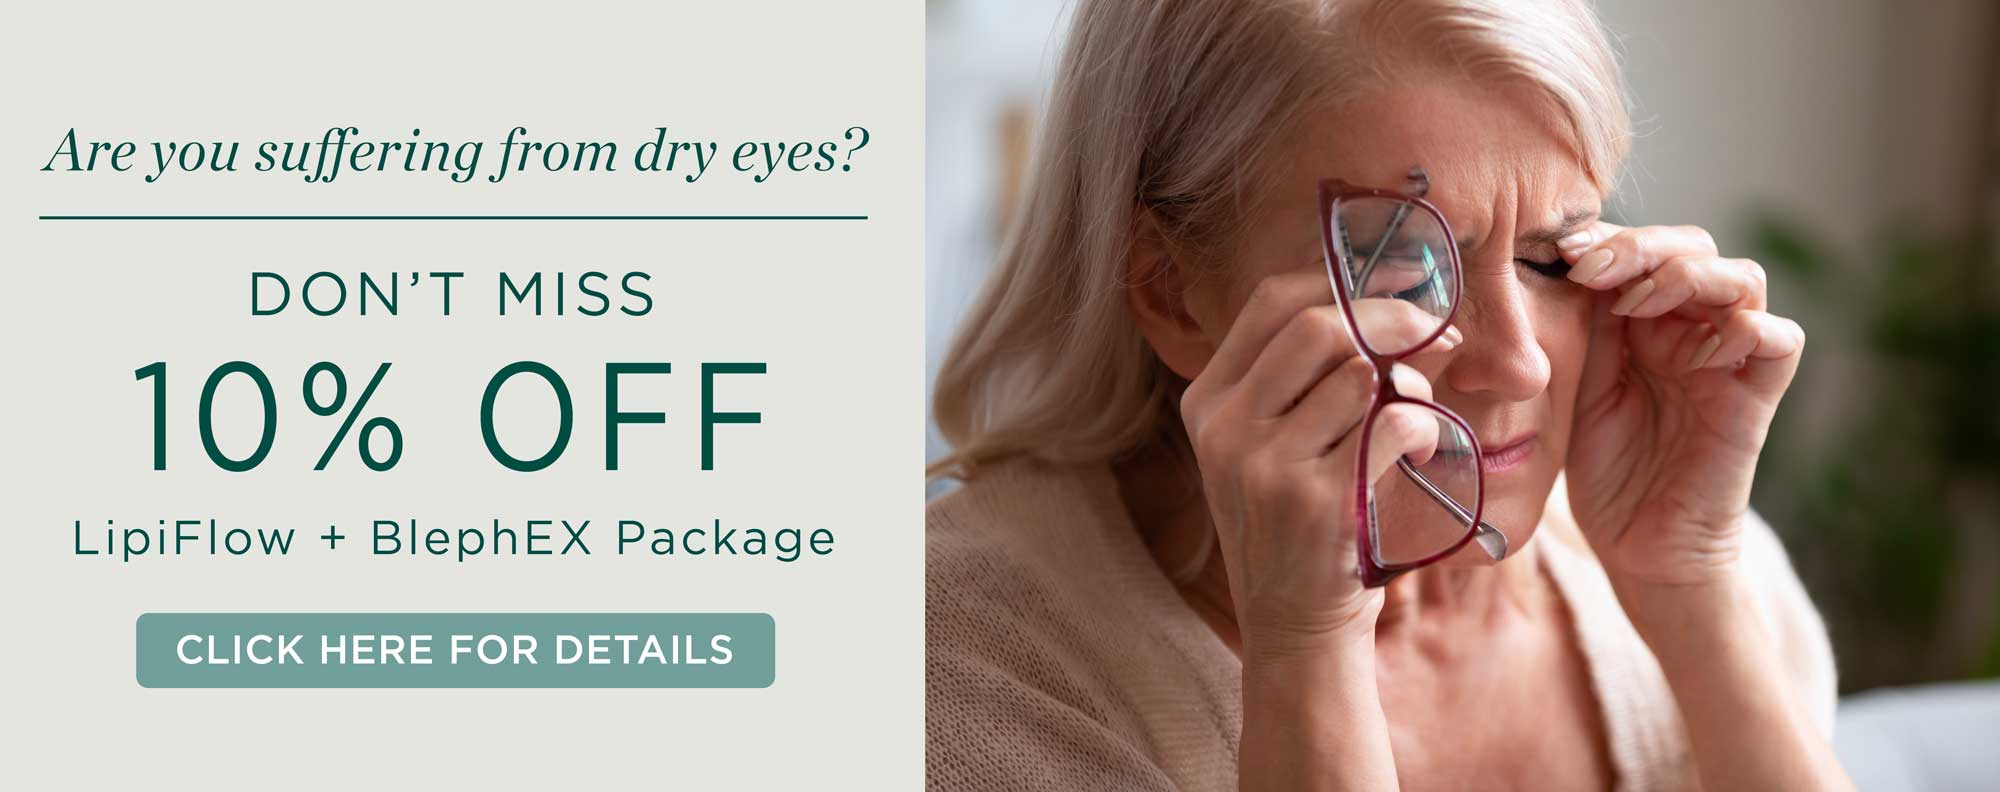 Are you suffering from dry eyes? Don't miss 20% off lipiflow & BlephEX Package - click to learn more